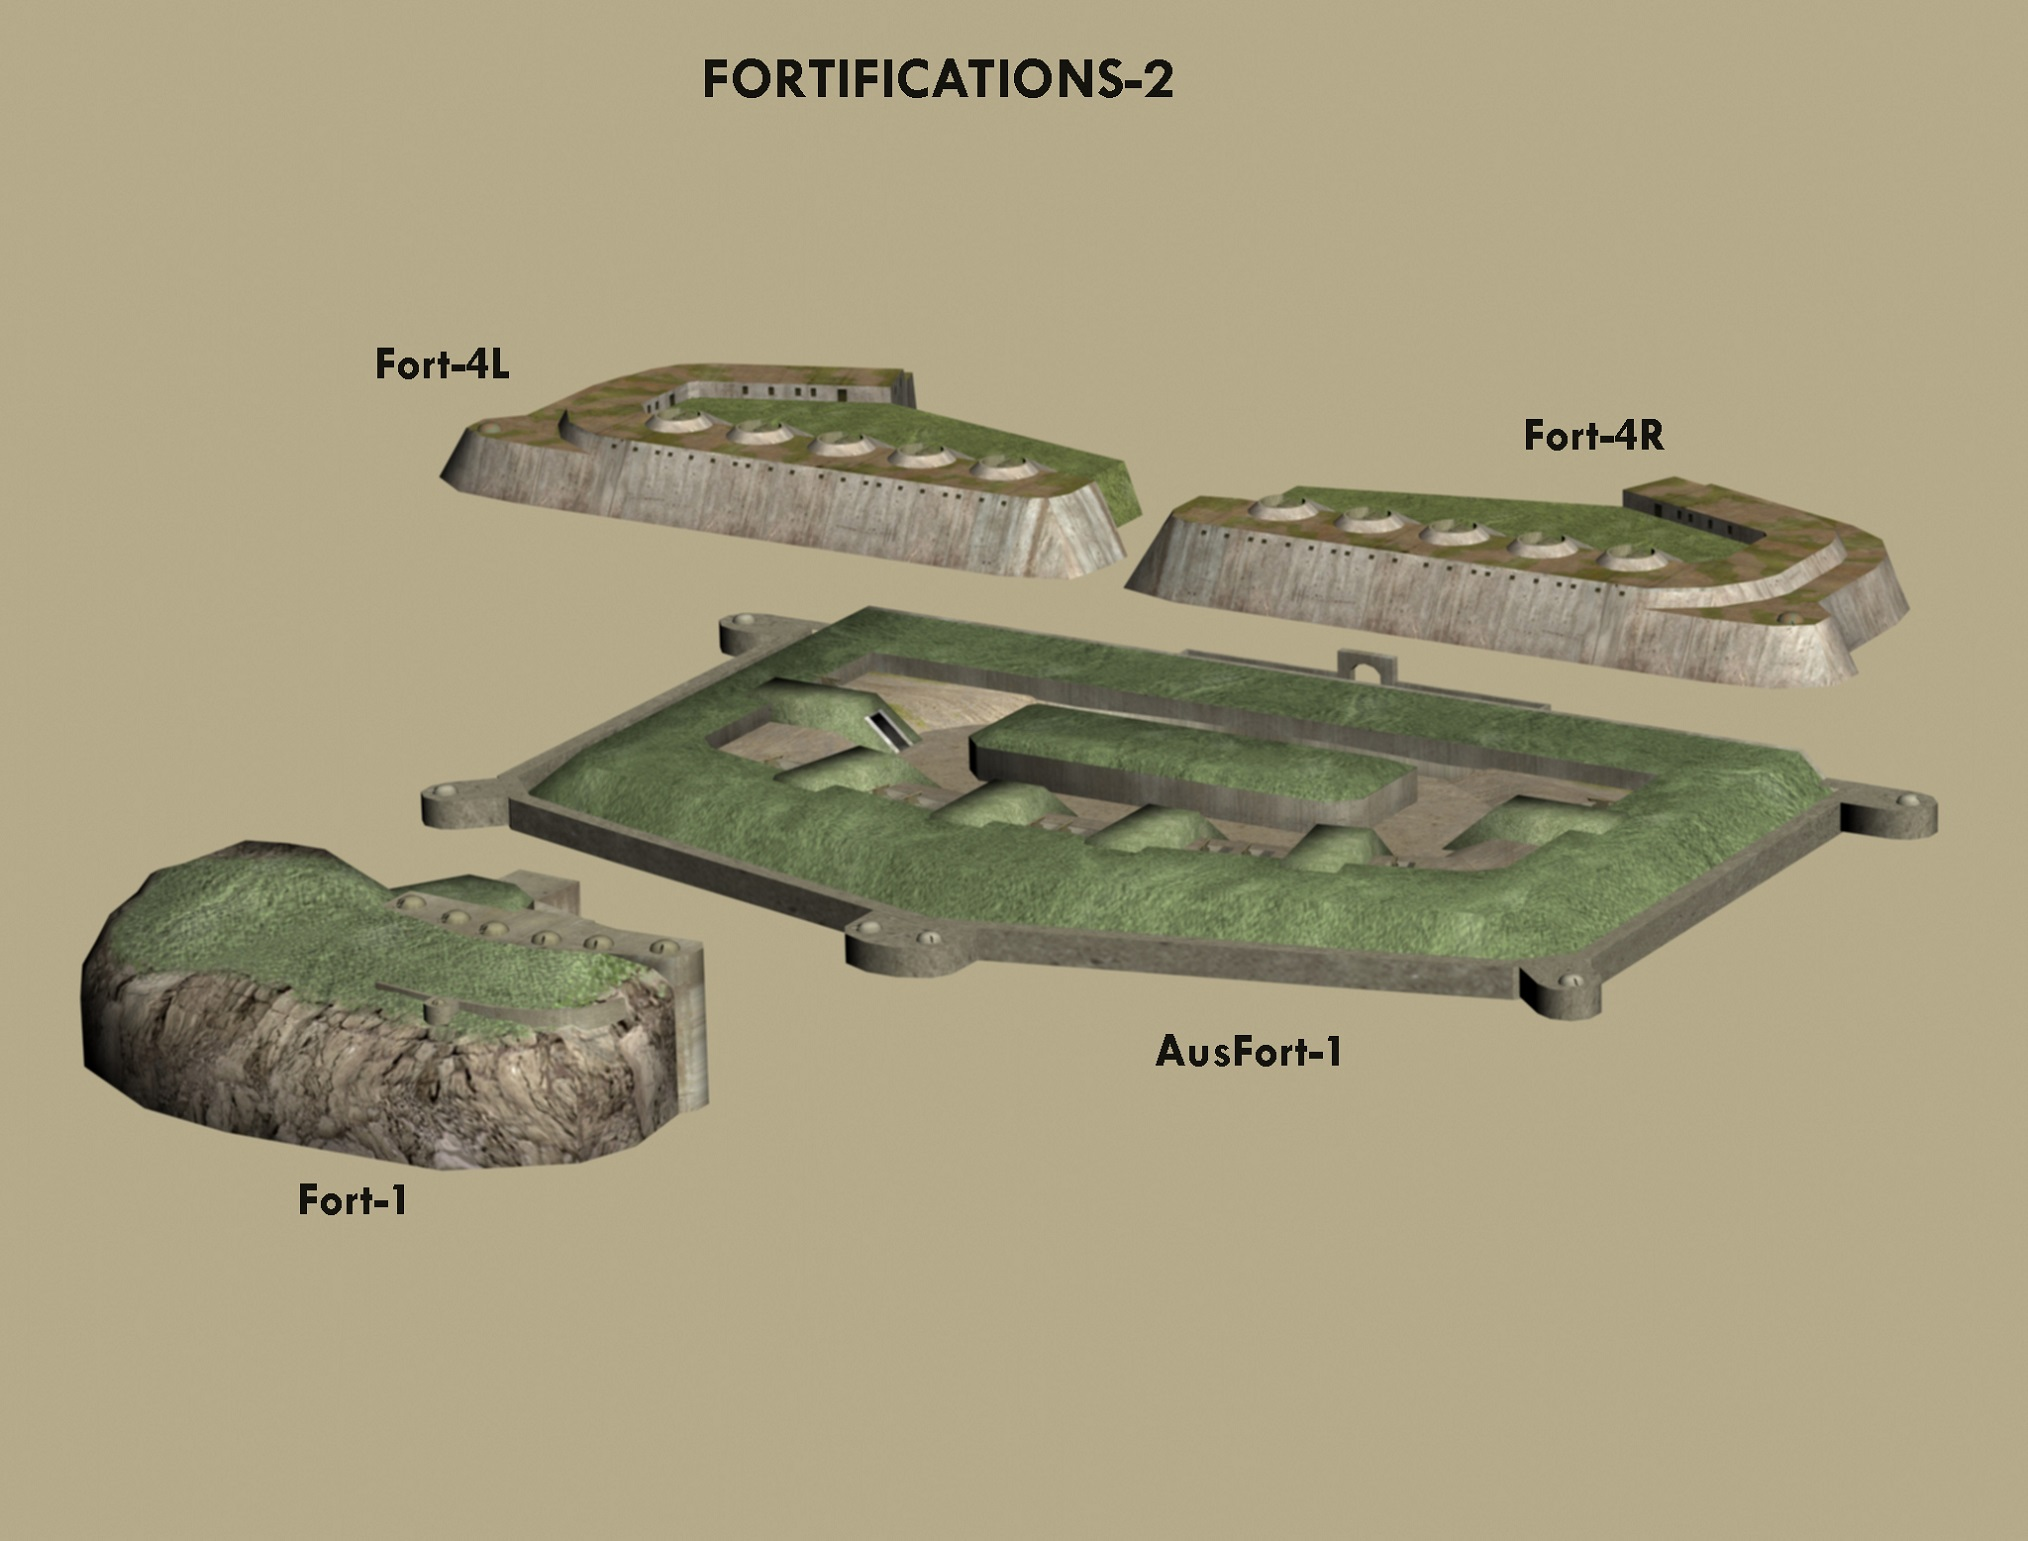 forts-2reduced.jpg